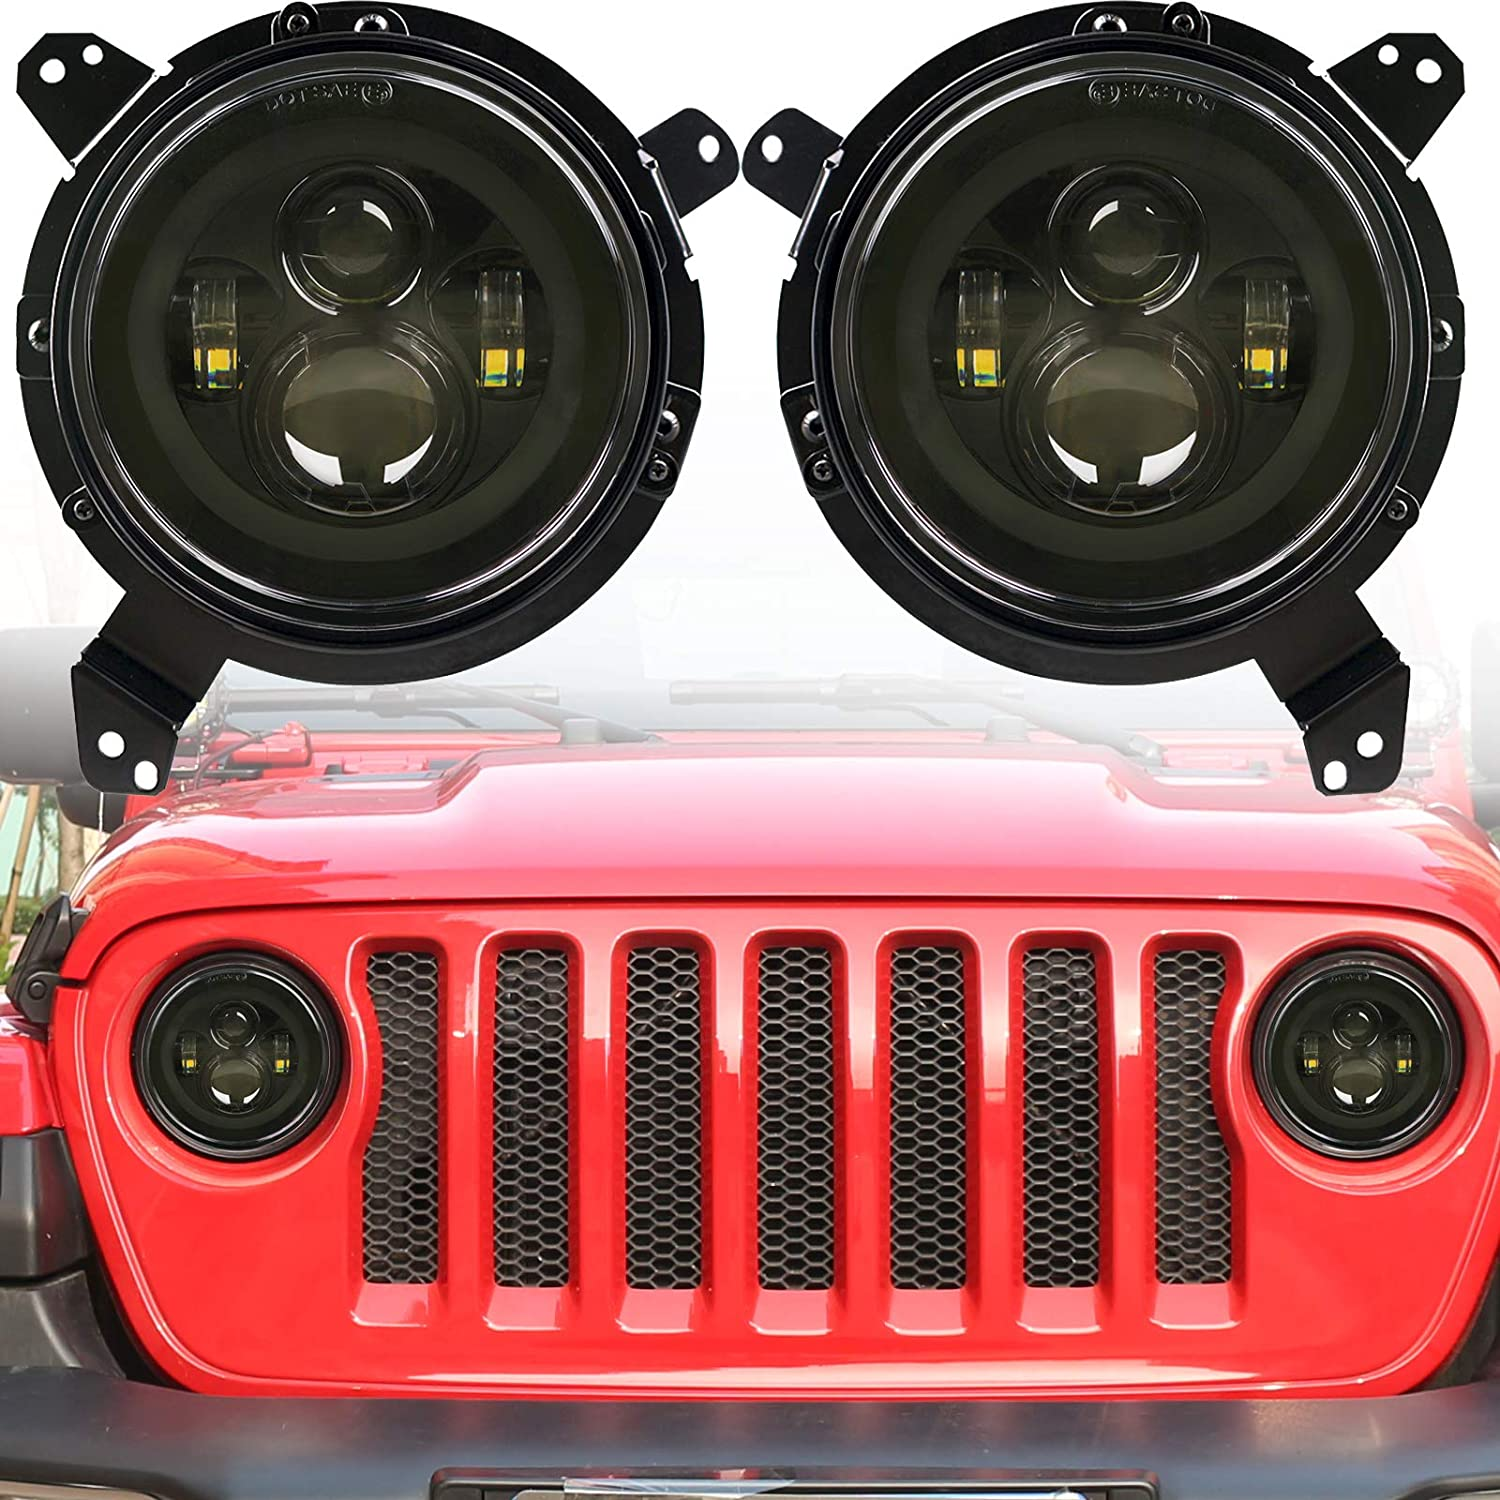 HOZAN JL Animer and price revision Headlights 7inch Round LED with 9 Black inc List price